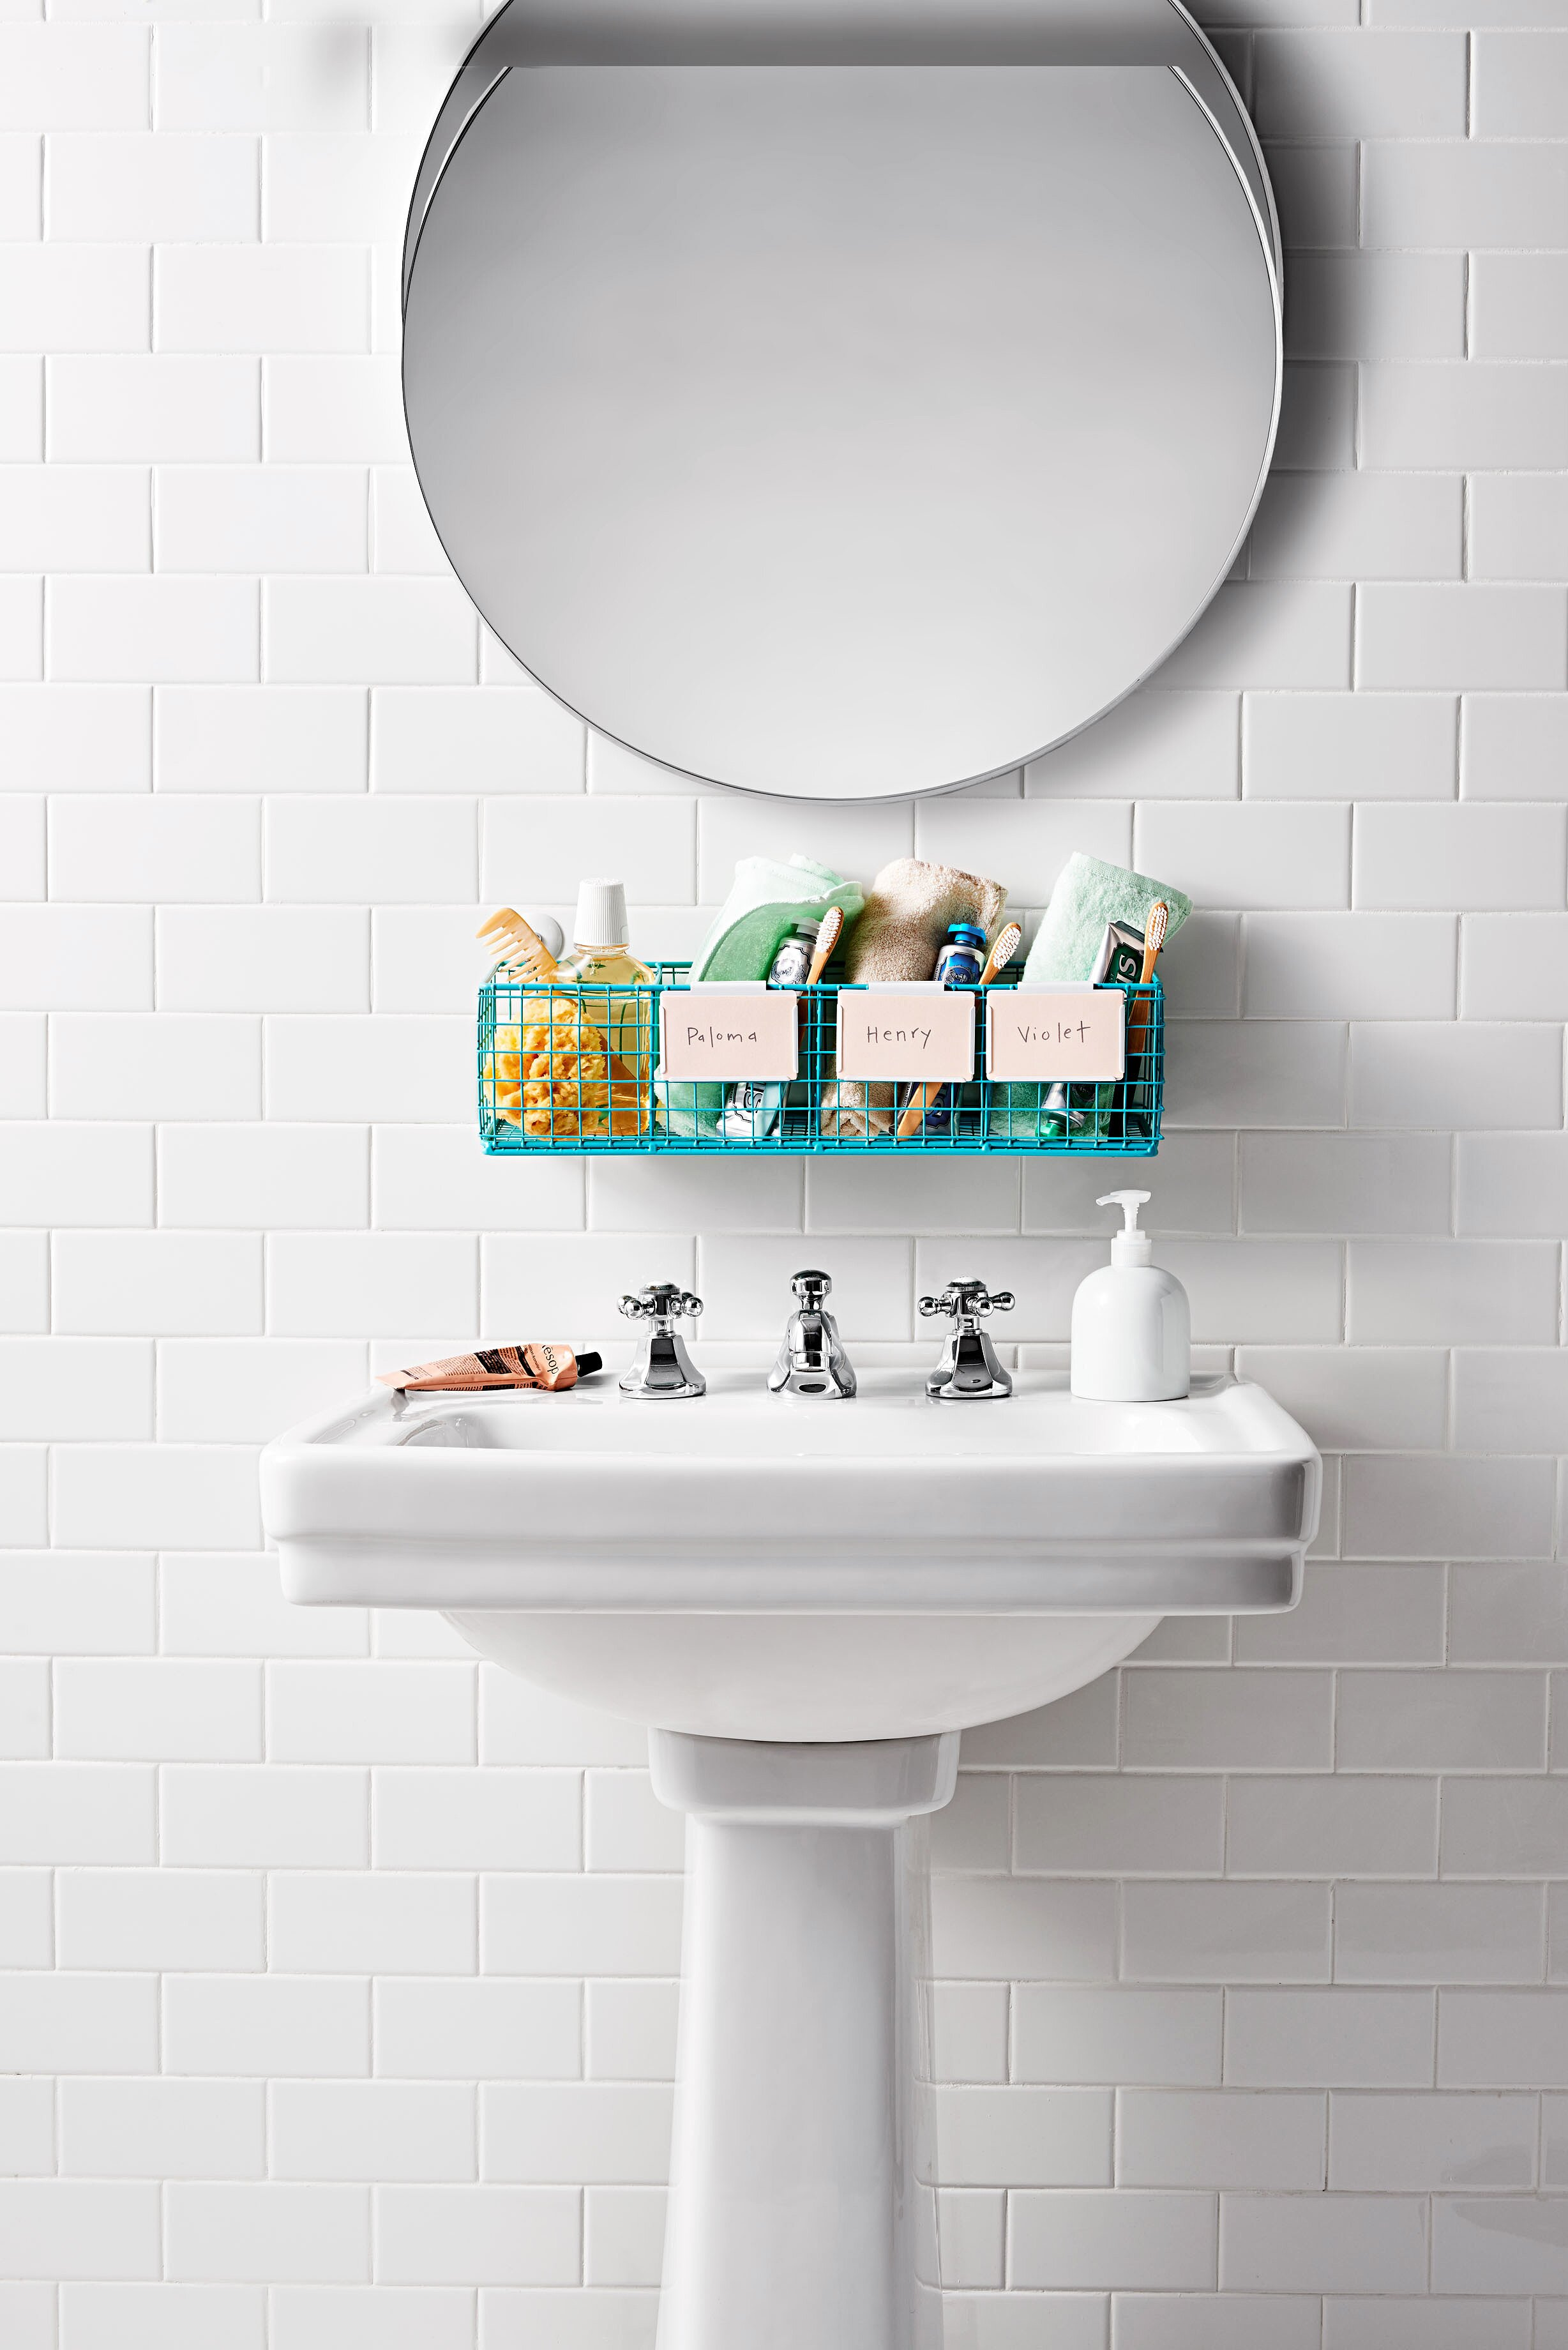 21 Bathroom Organization Tips That Will Give You More Space Martha Stewart